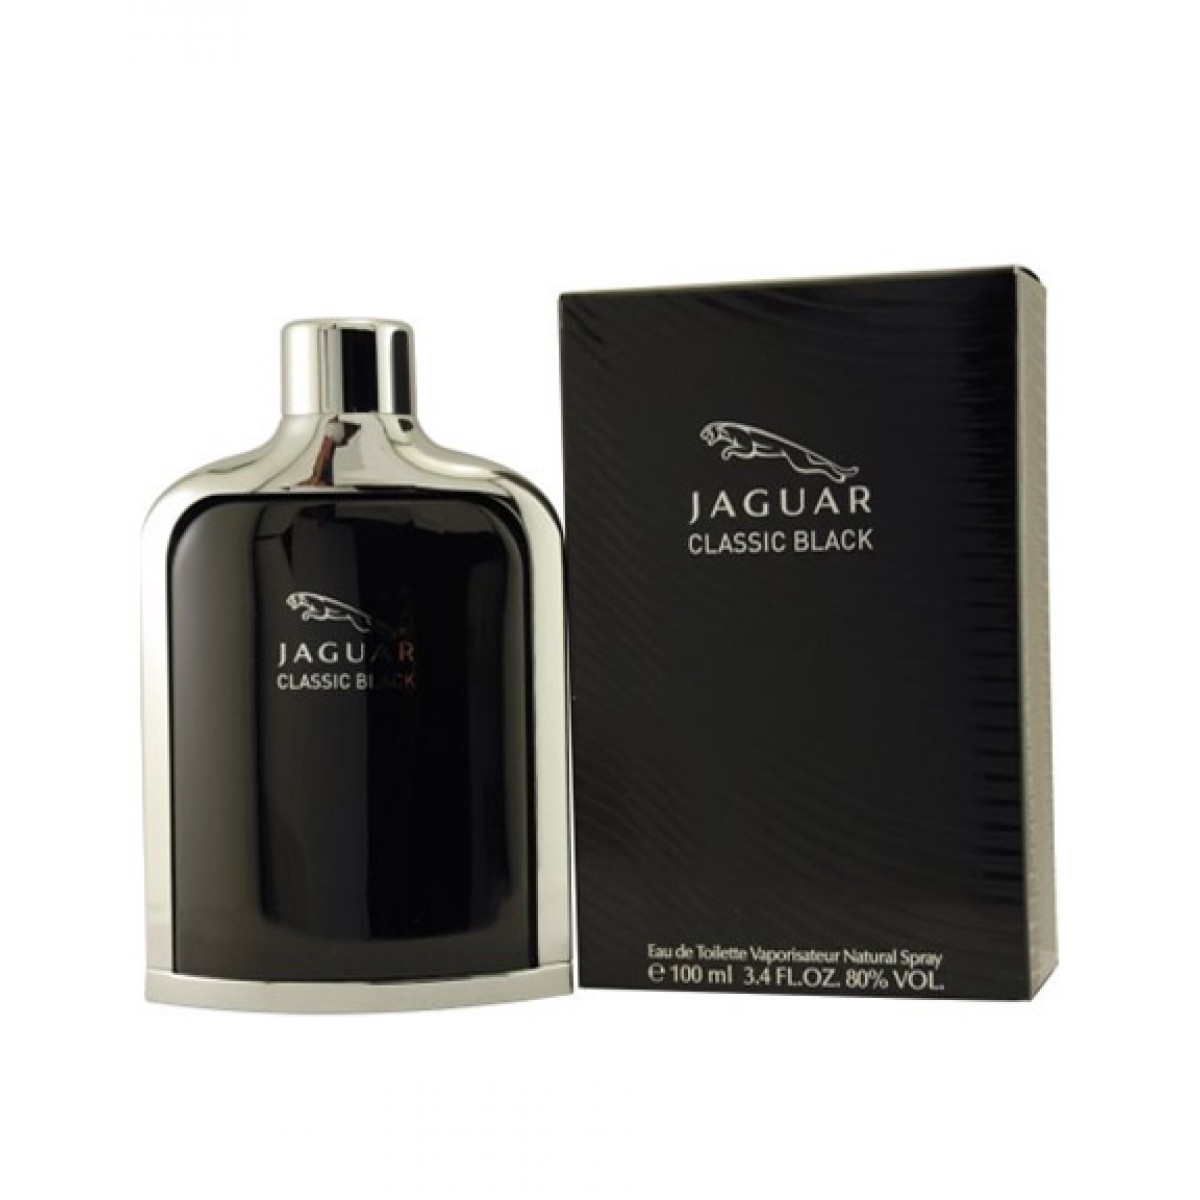 Jaguar Perfume For Mens Price: Original Jaguar Men Perfumes Price In Pakistan